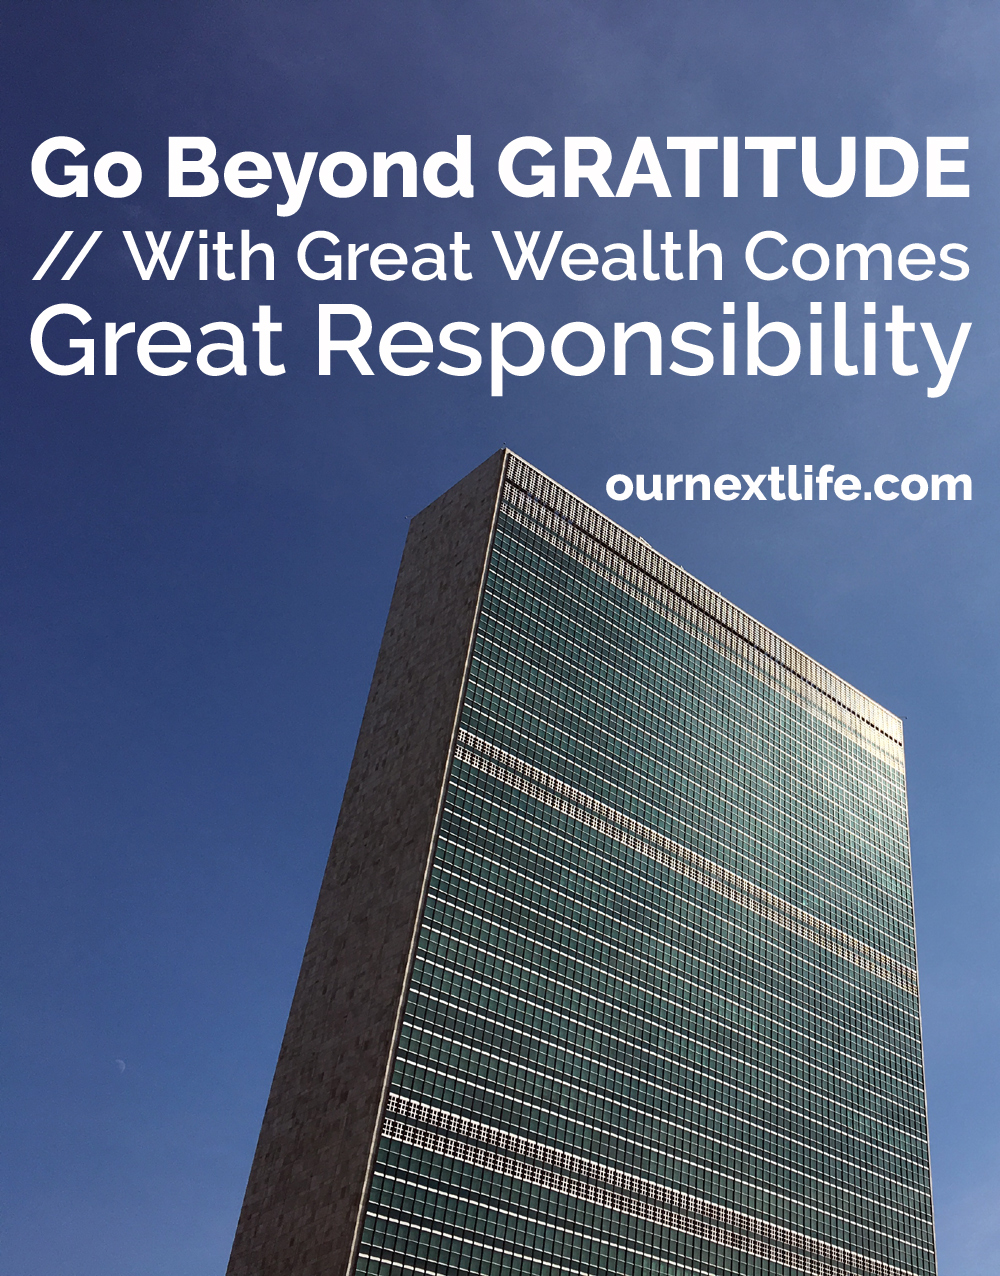 OurNextLife.com // Go Beyond Gratitude // With Great Wealth Comes Great Responsibility